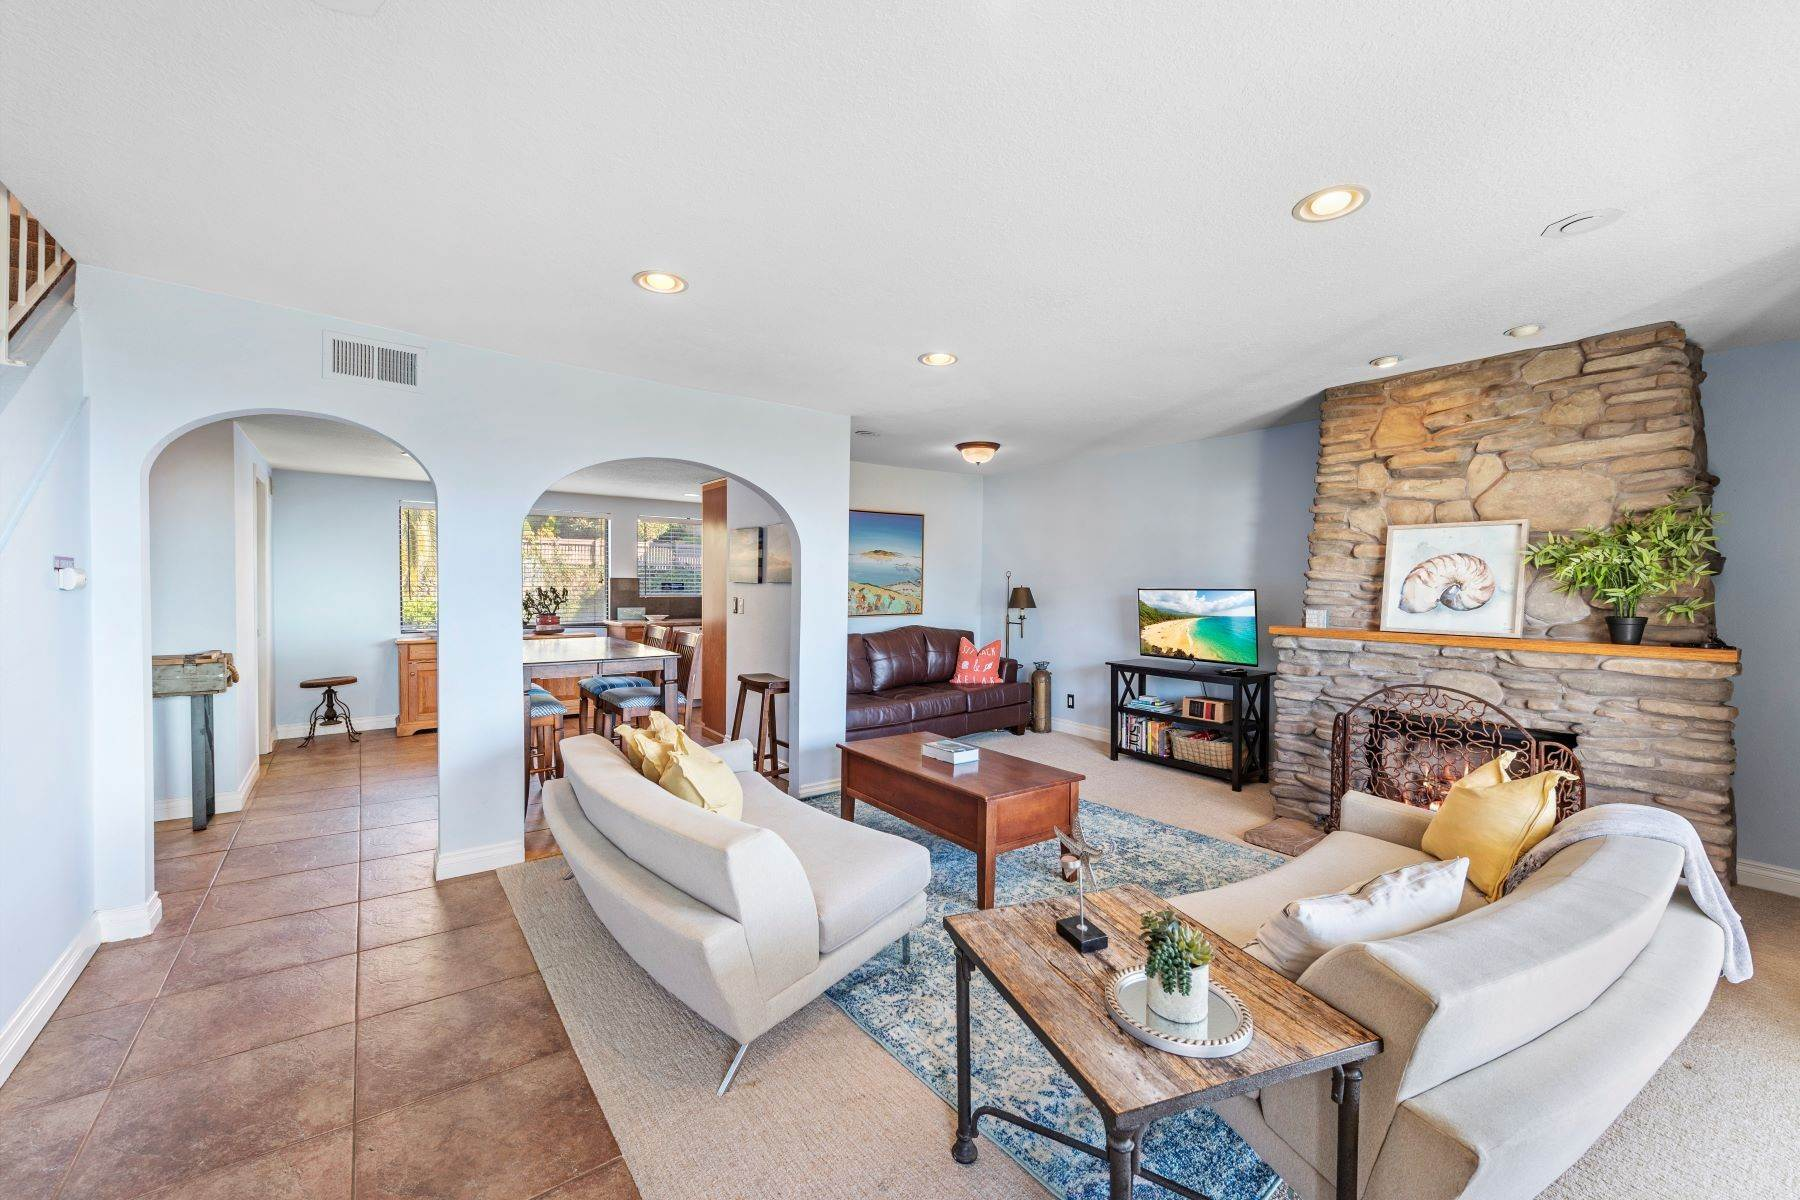 9. Condominiums for Sale at 321 Acebo Lane Unit #C, San Clemente, CA 92672 321 Acebo Lane, Unit #C San Clemente, California 92672 United States